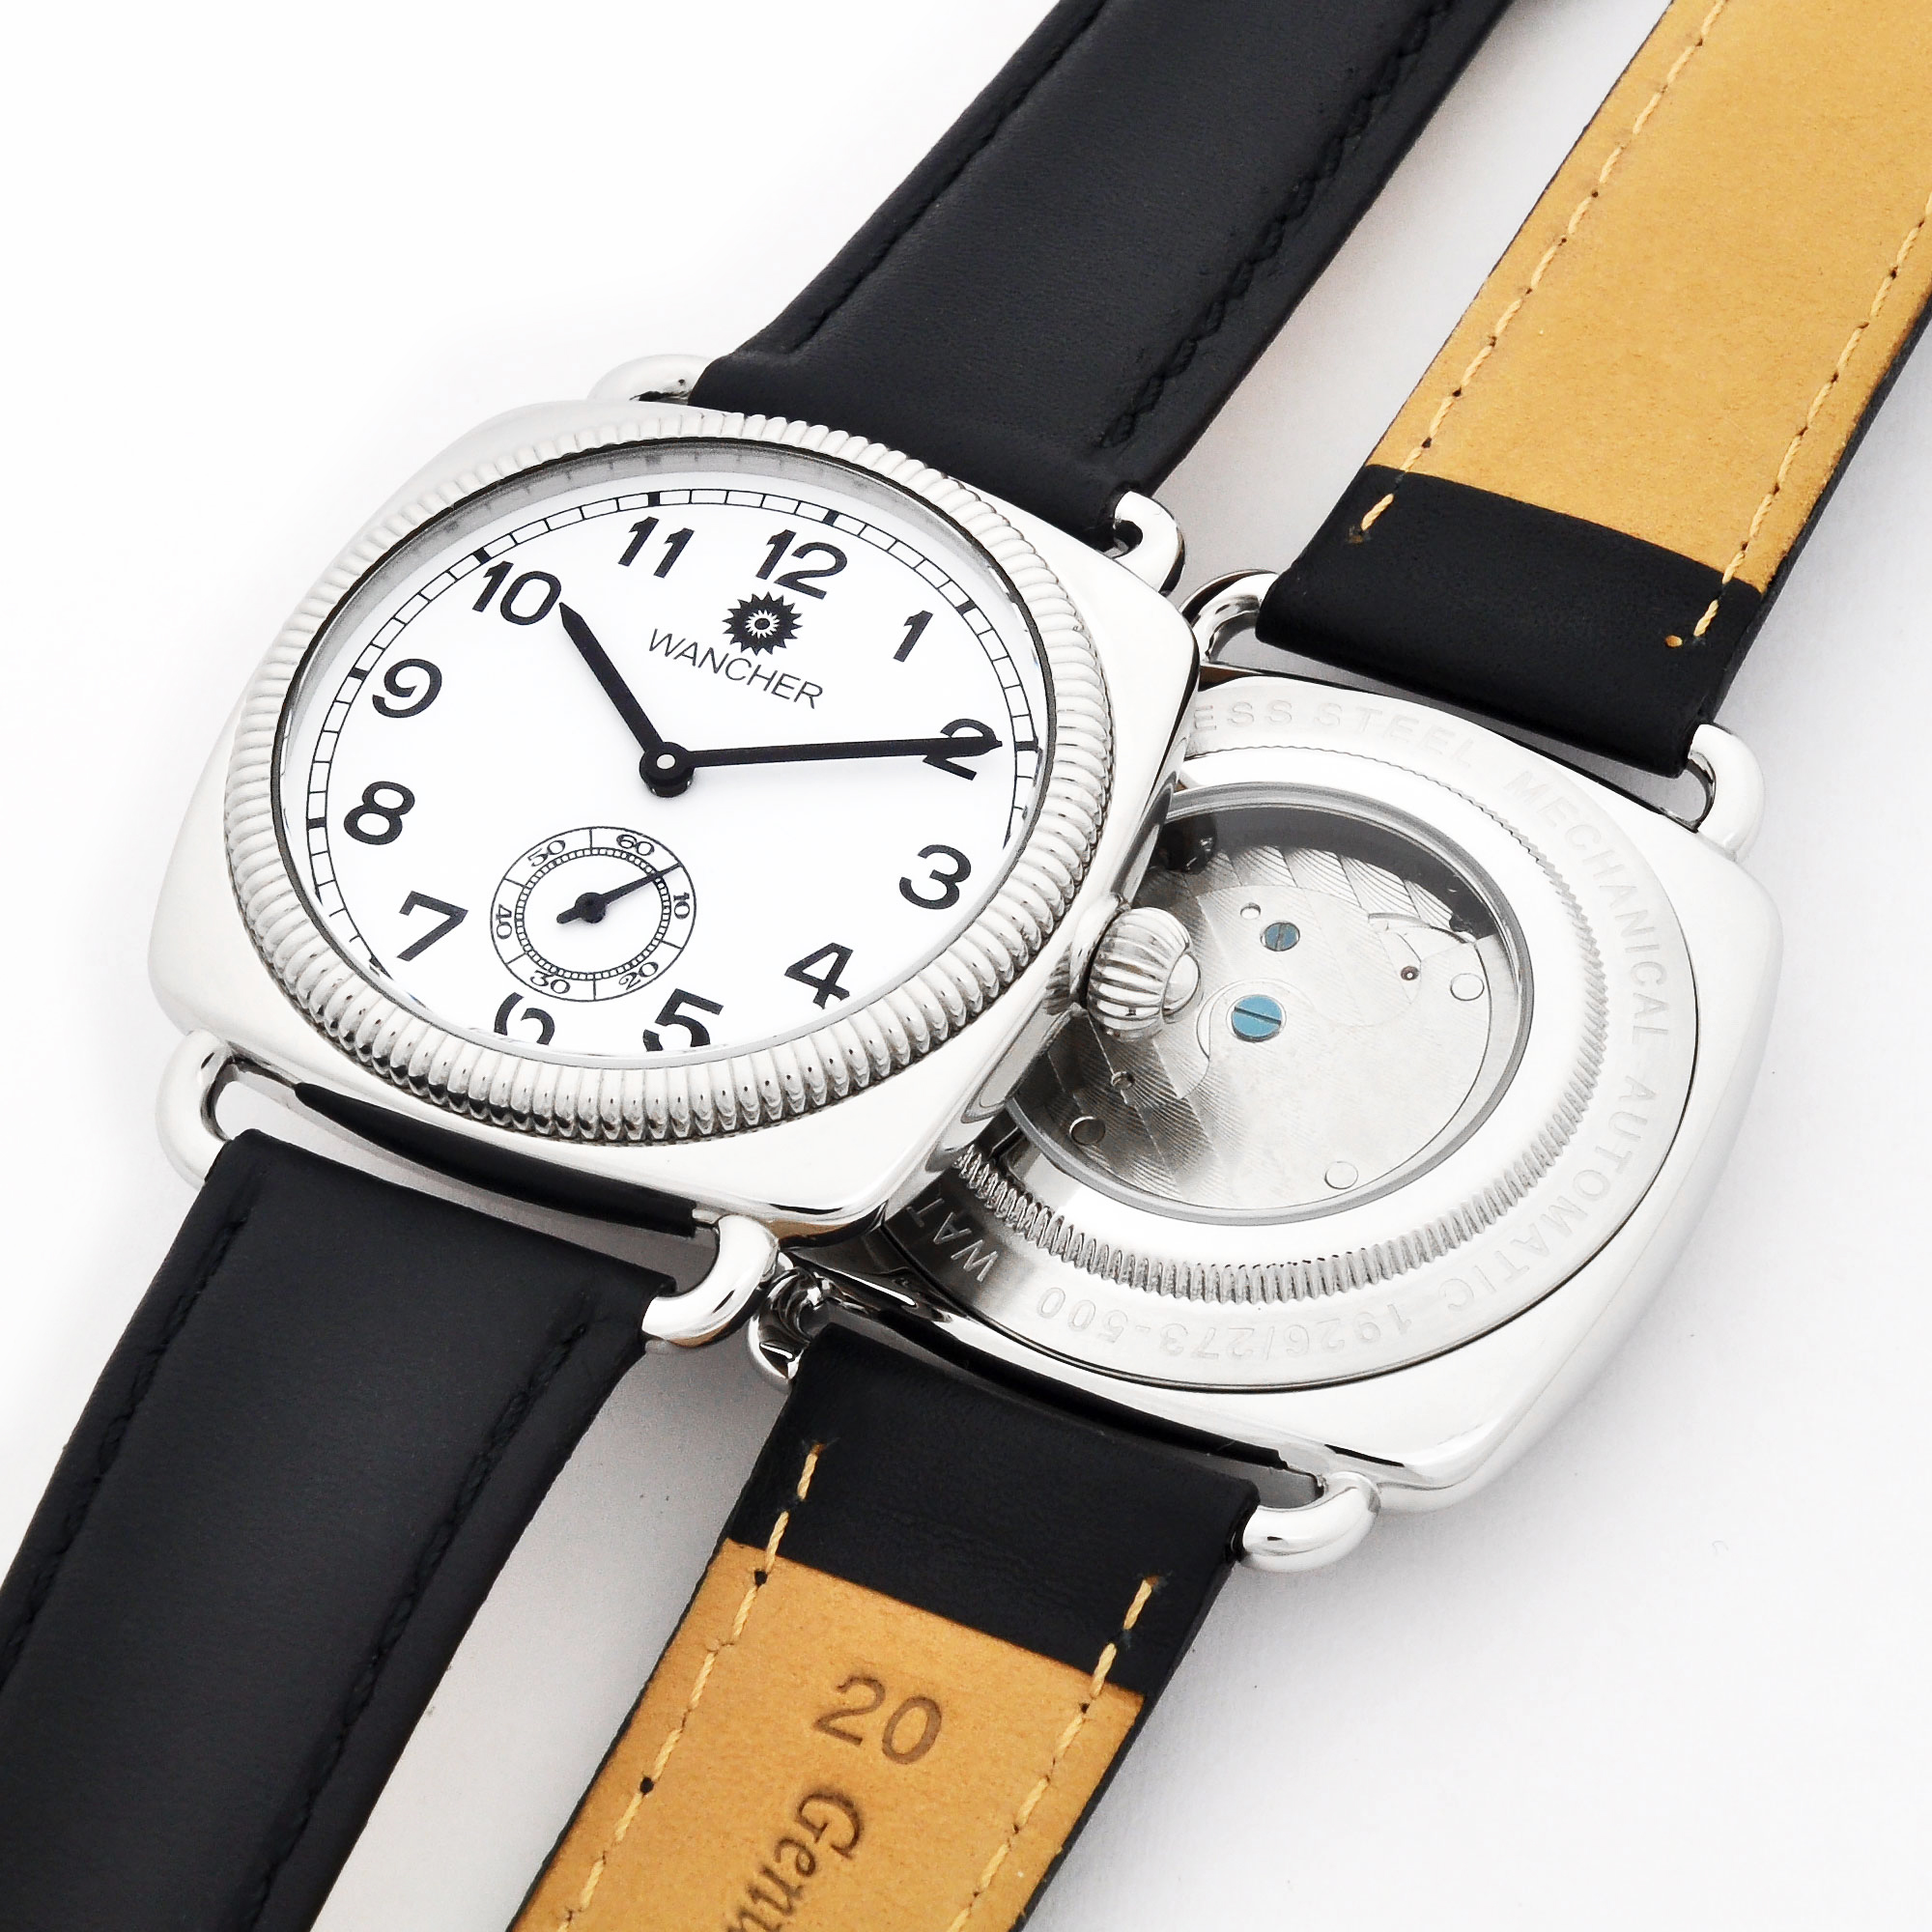 Second Hand Totalizer - Seashell 1920 runs with mechanical self-winding movement. The single second hand totalizer at 6 which is featured with seashell analog is the minimized image of Seashell 1920 watch.